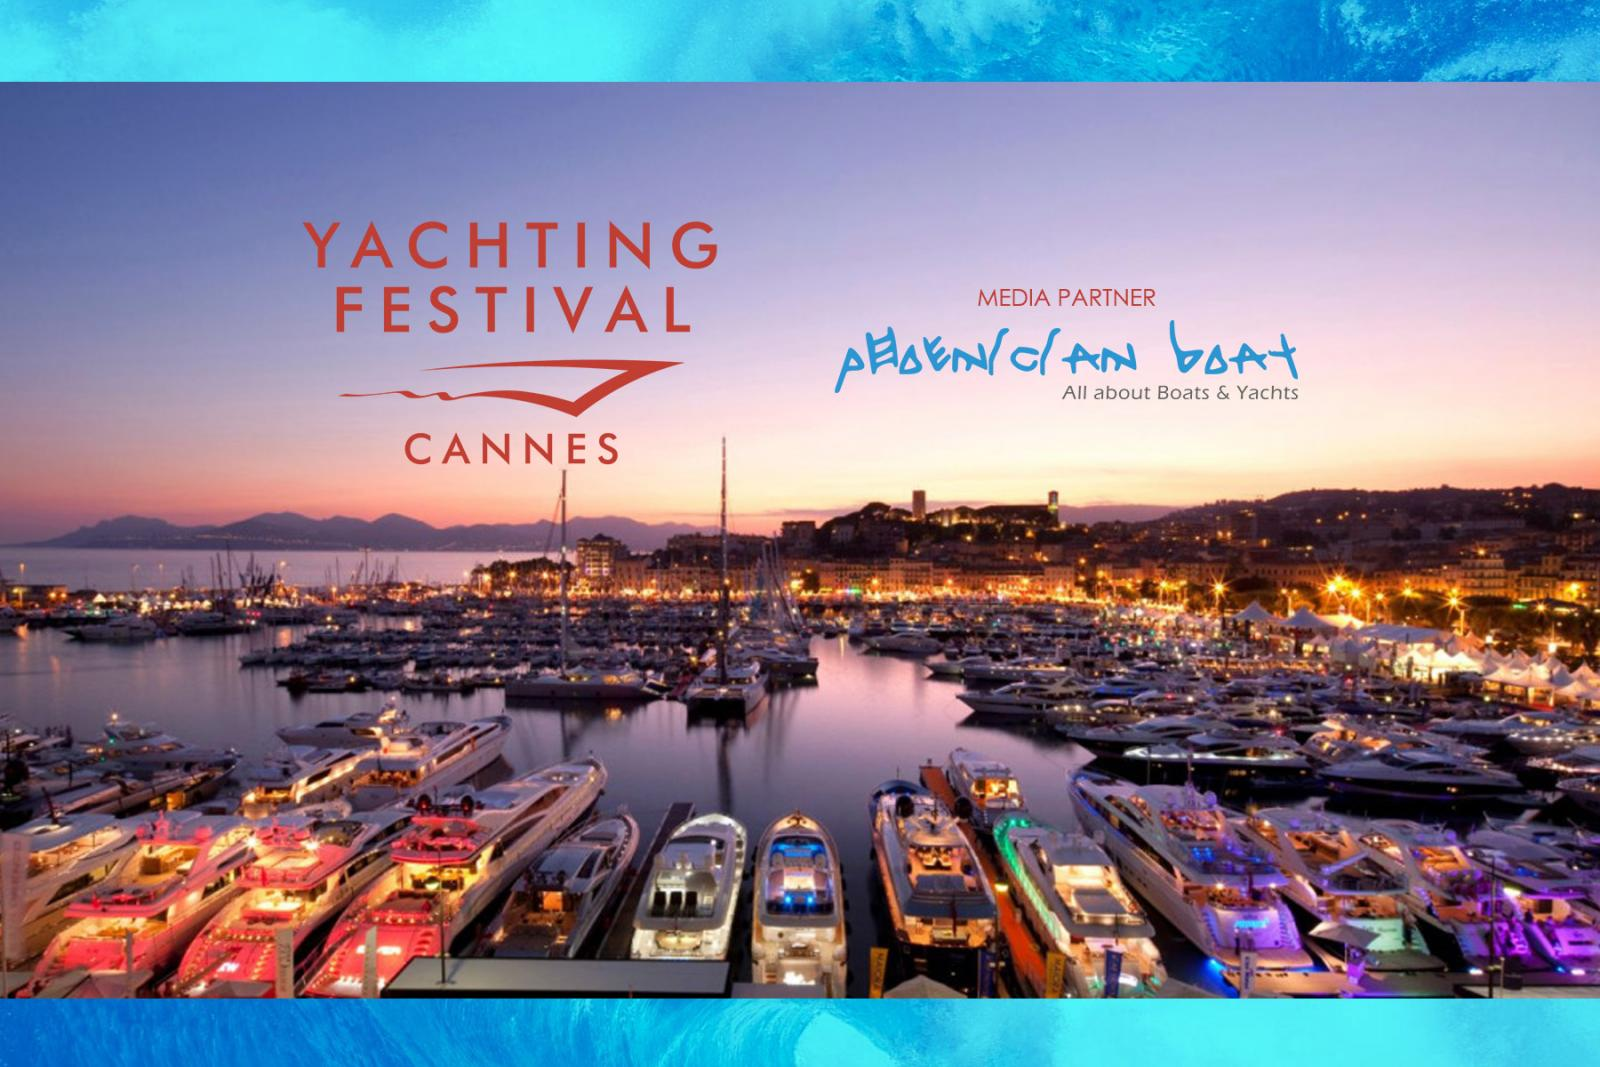 Phoenician Boat is the Media Partner for Cannes Yachting Festival